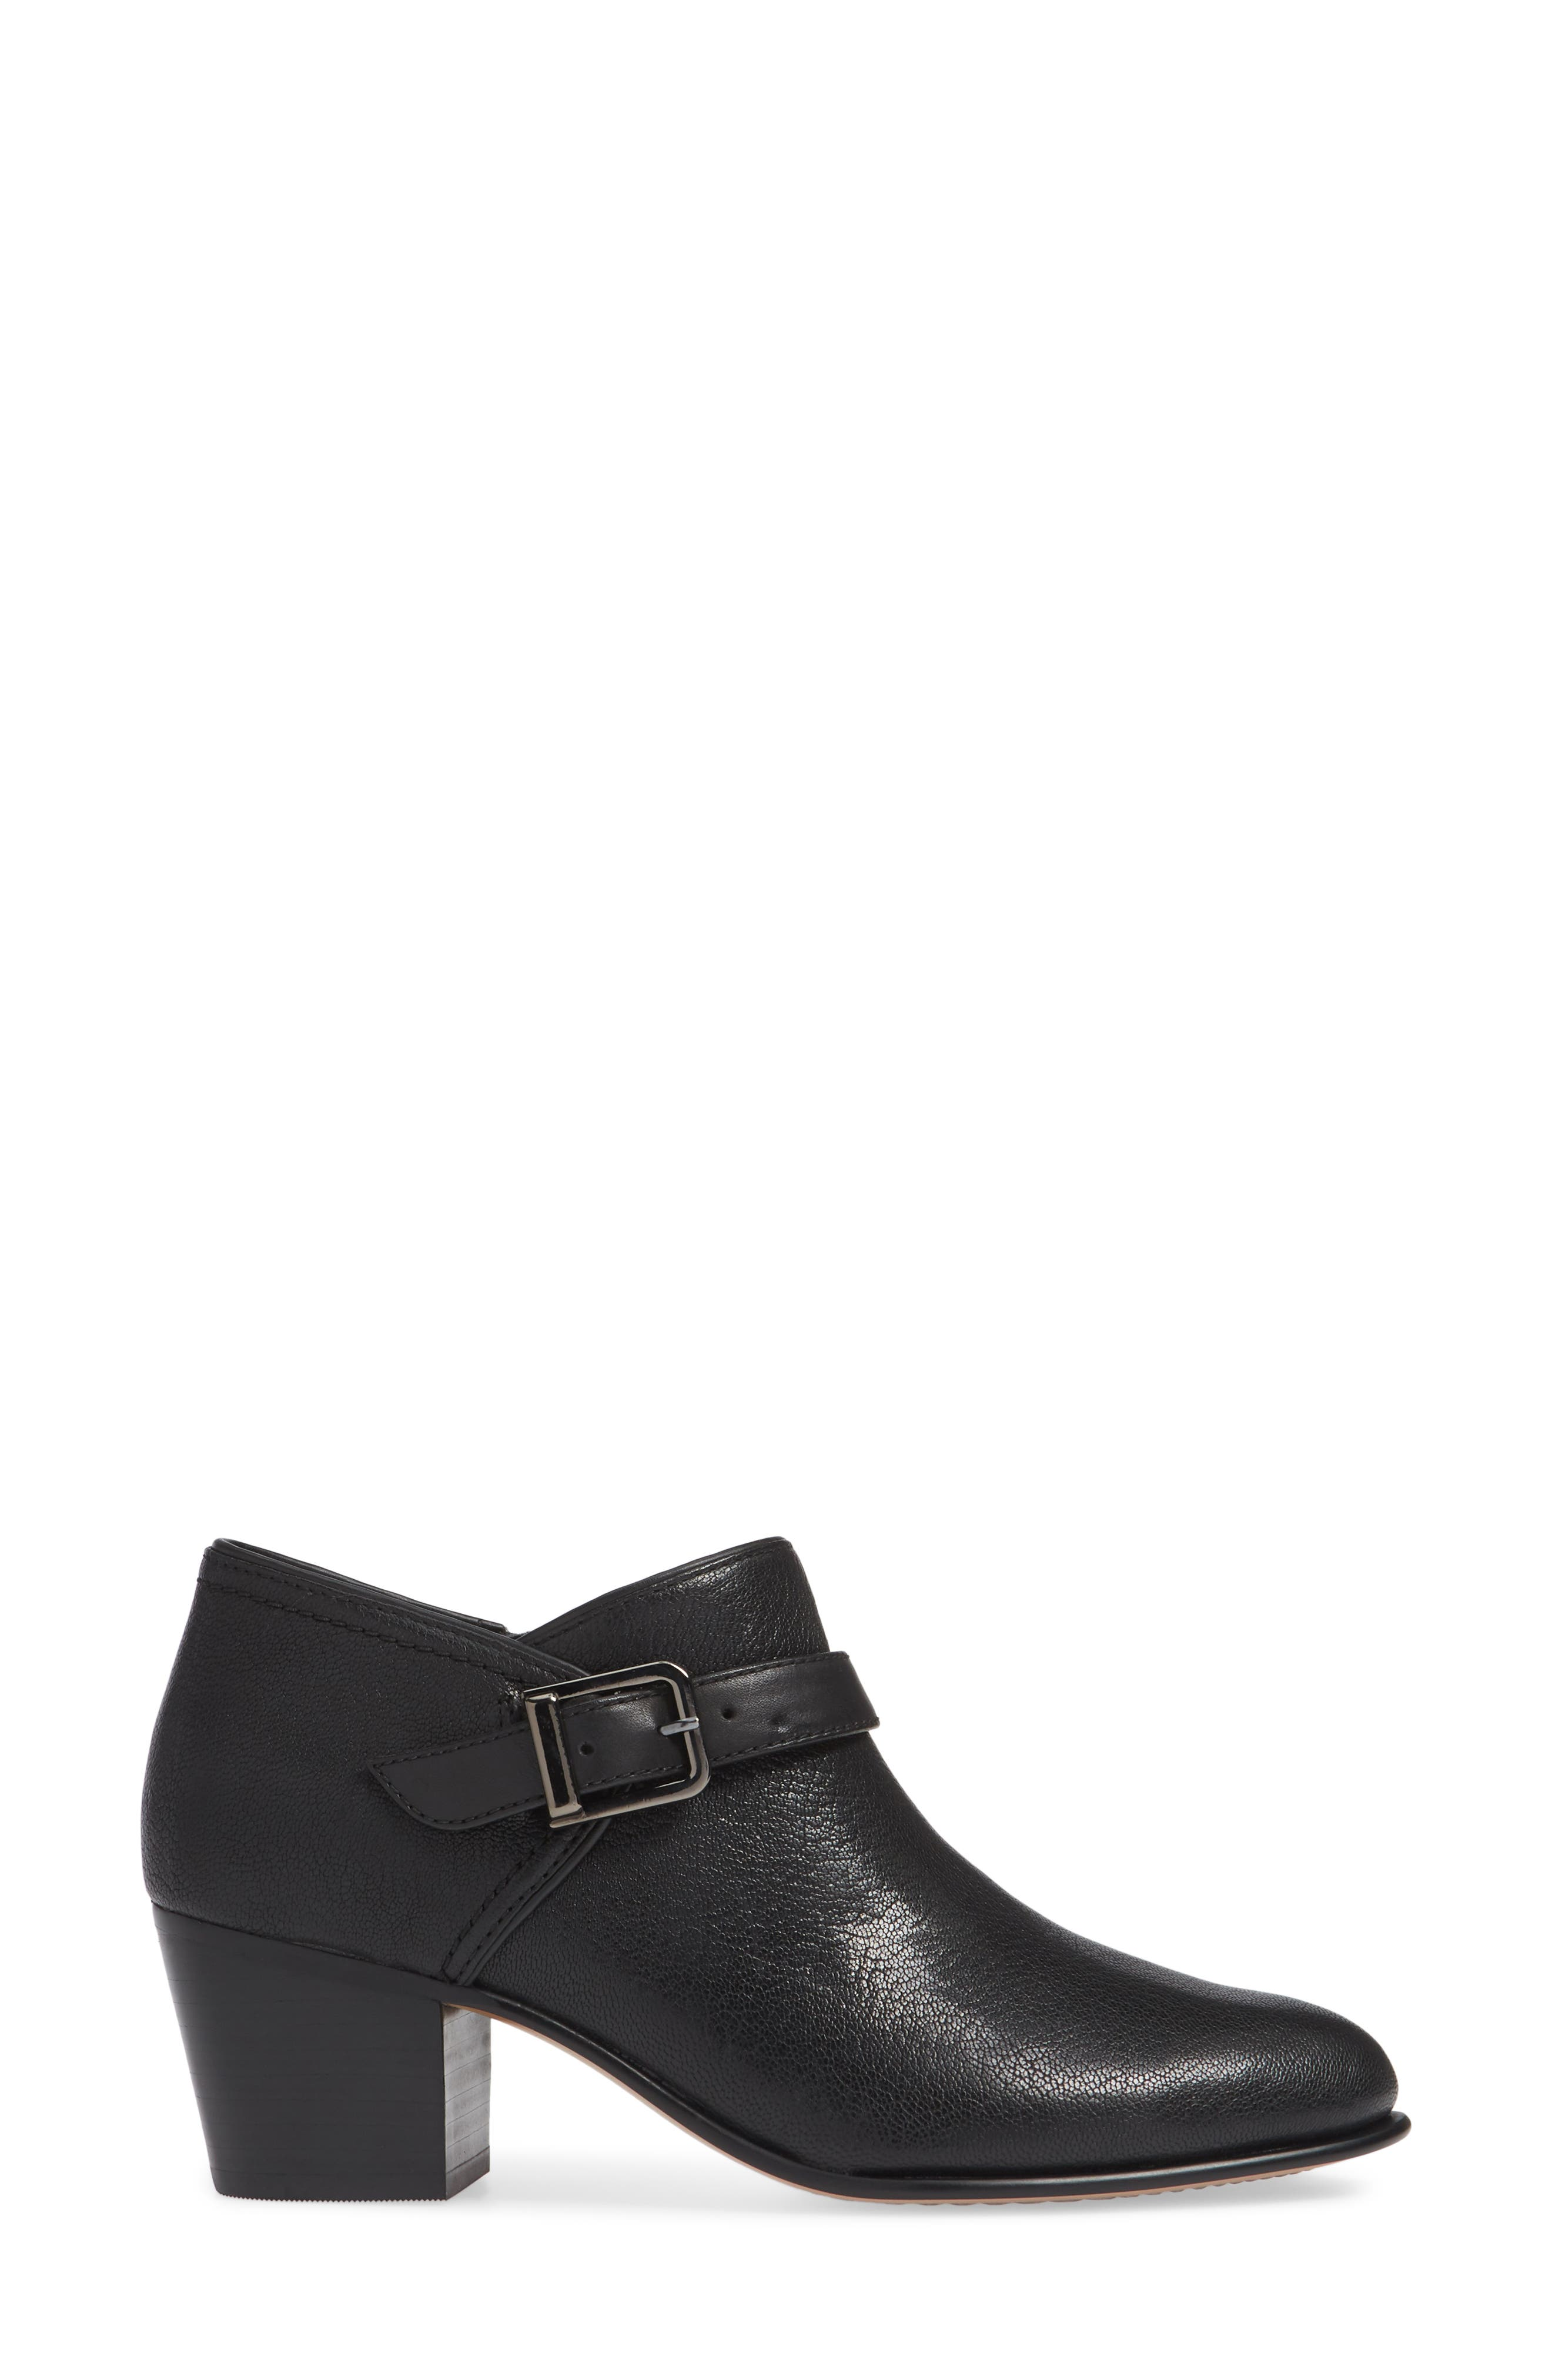 CLARKS<SUP>®</SUP>, Maypearl Milla Bootie, Alternate thumbnail 3, color, BLACK TUMBLED LEATHER